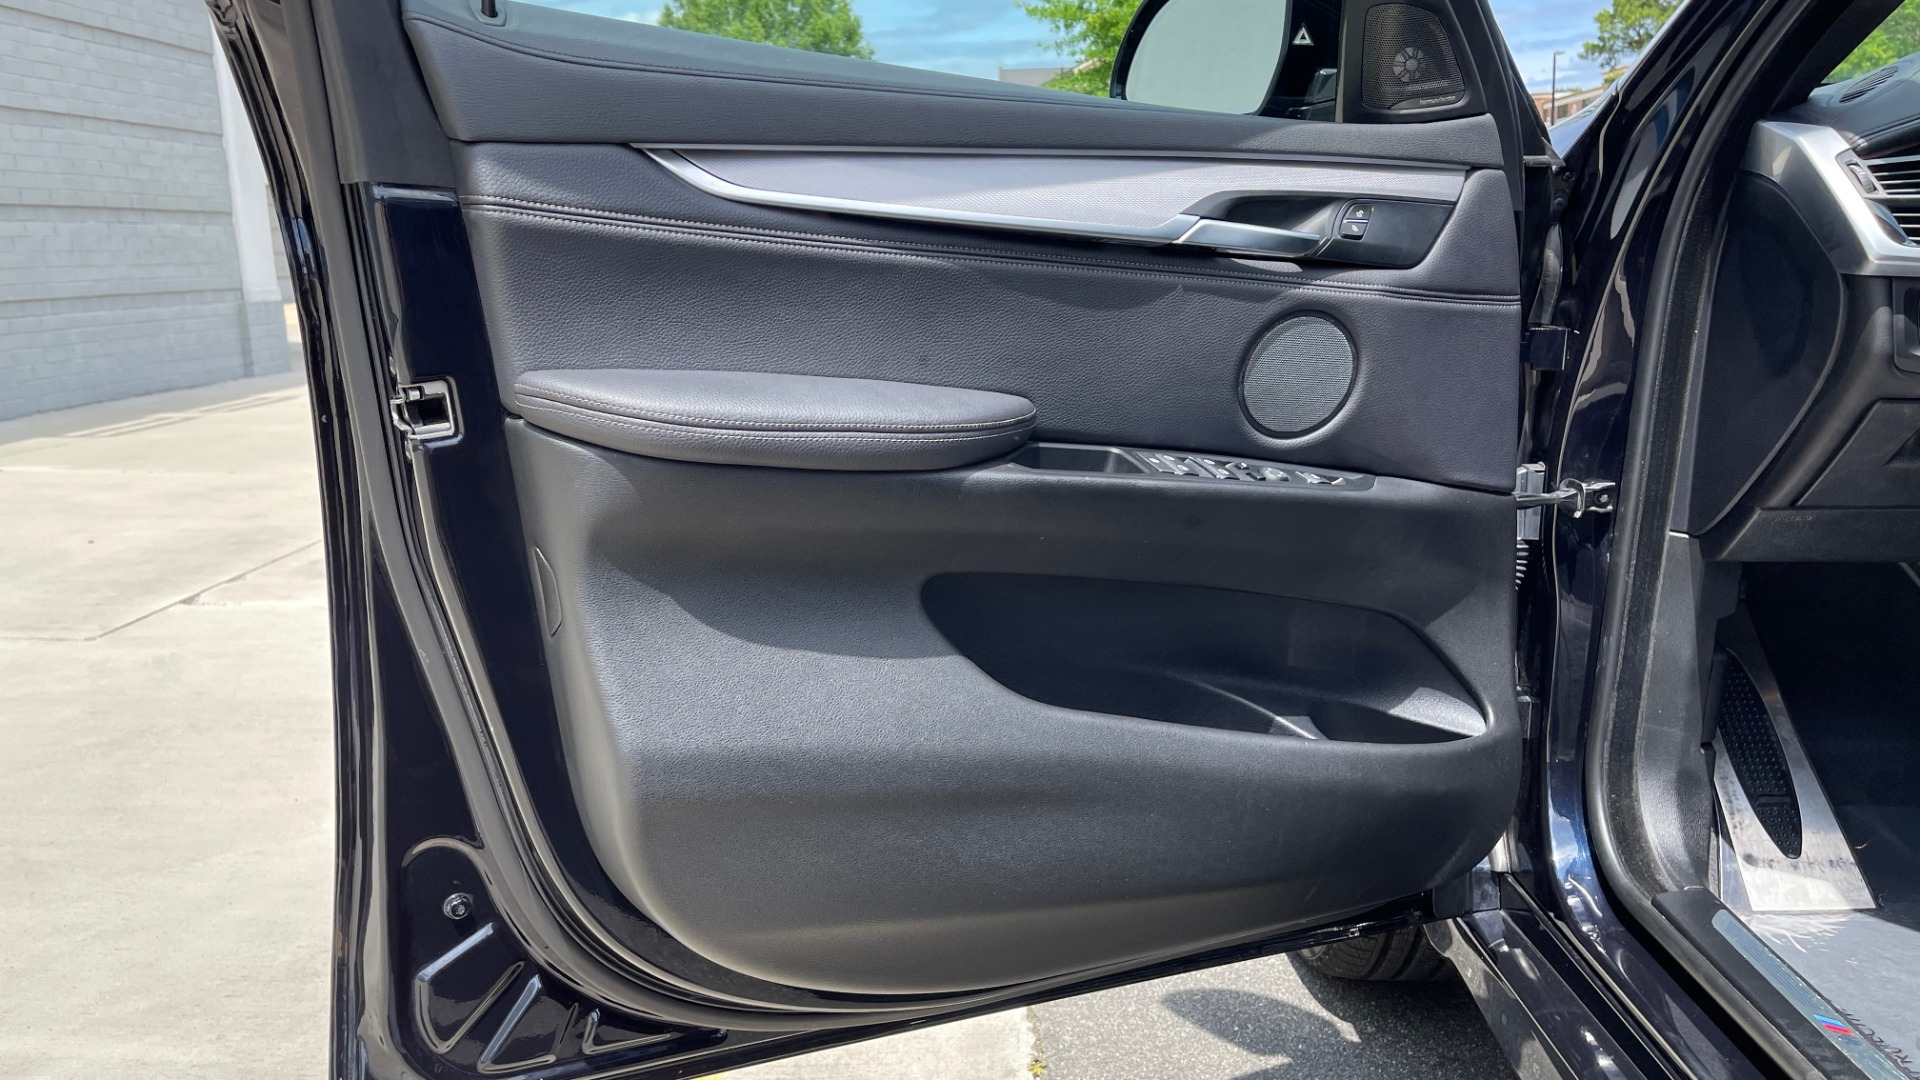 Used 2018 BMW X6 XDRIVE35I M-SPORT / DRVR ASST / PRK ASST / H/K SND / APPLE / WIRELESS CHARG for sale $51,995 at Formula Imports in Charlotte NC 28227 28